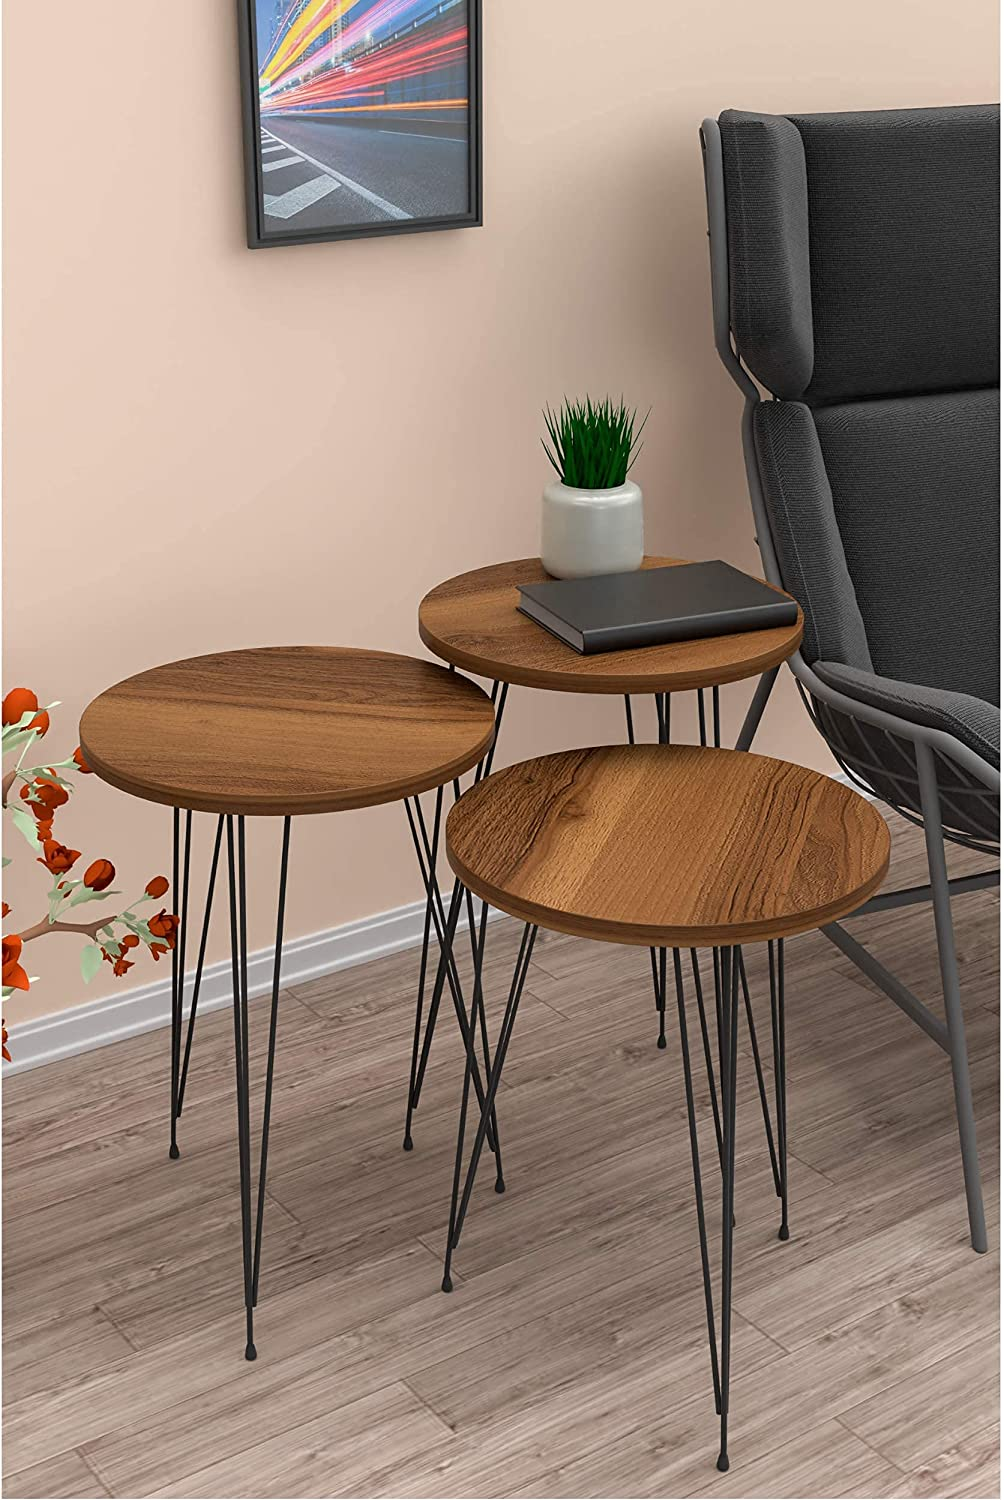 Set of 3 Nesting End Tables - PAK Home Round Stacking Coffee Side Tables for Small Spaces, Nightstand Bedside Table with Metal Legs for Bedroom, Living Room, Home Office, Sturdy&Easy Assembly, Walnut